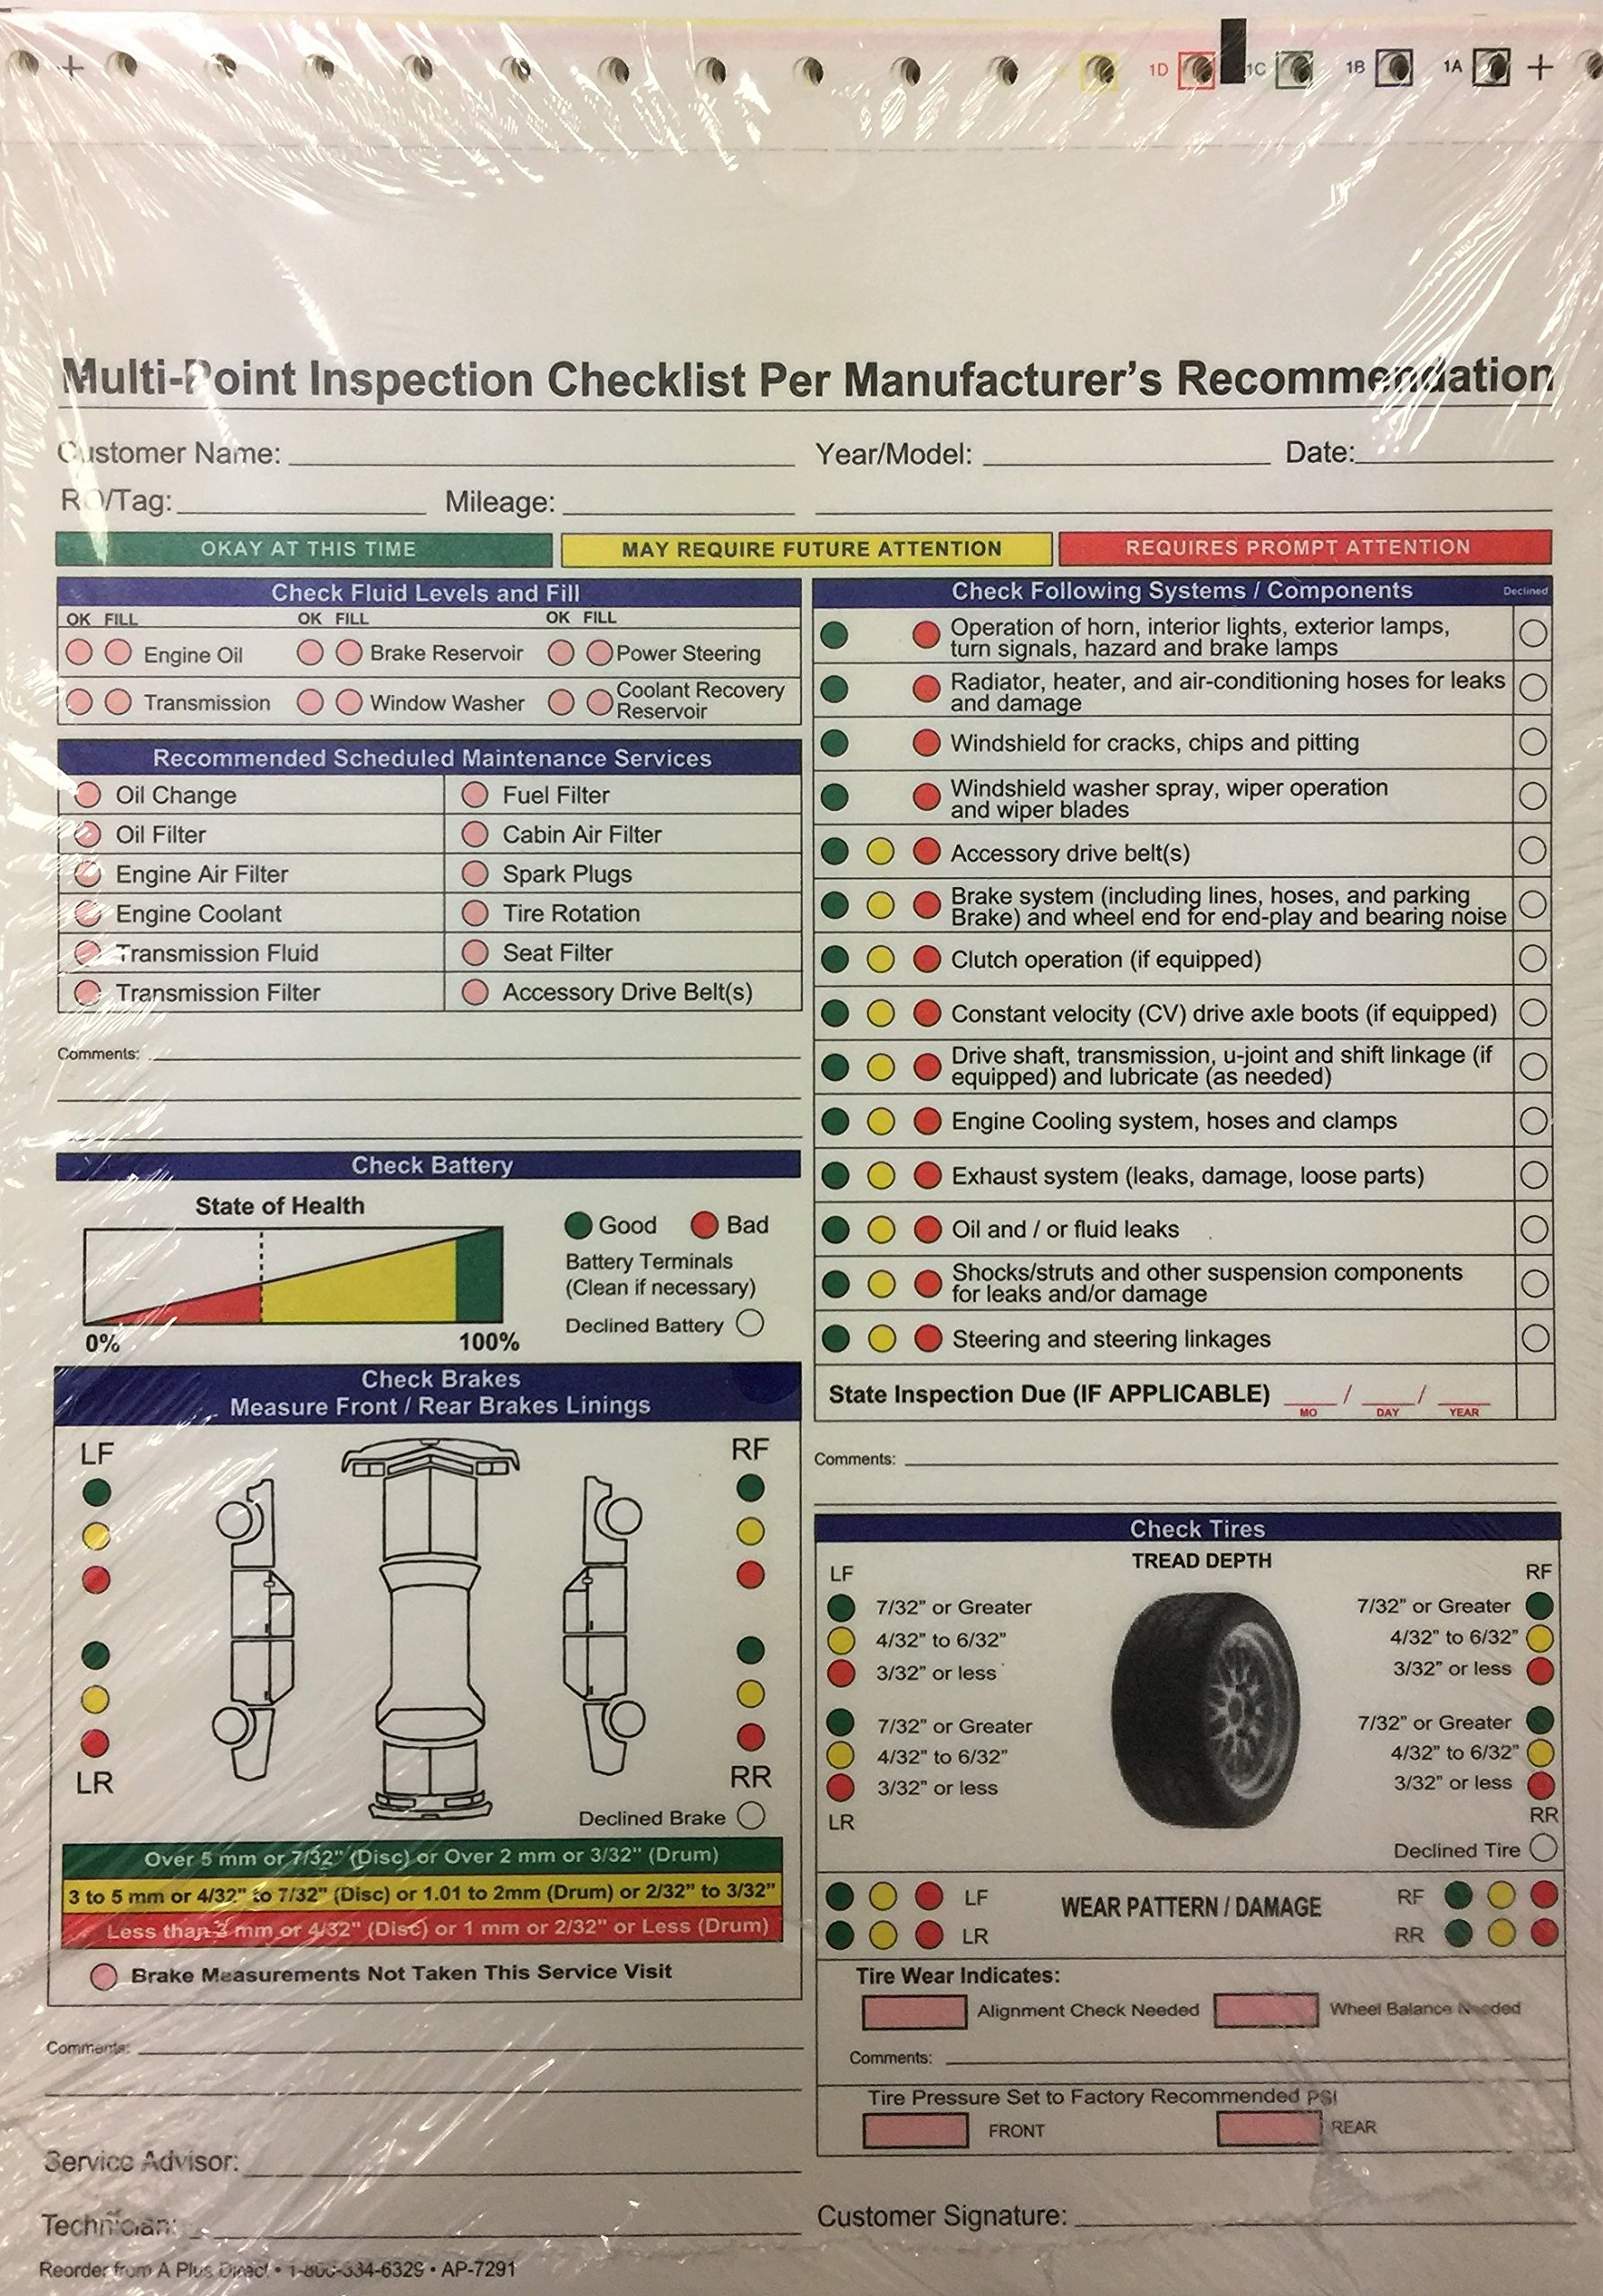 Multi-Point Inspection Forms - (250/pack) 7291 (W15) by A Plus Dealer Supplies (W15) (Image #4)